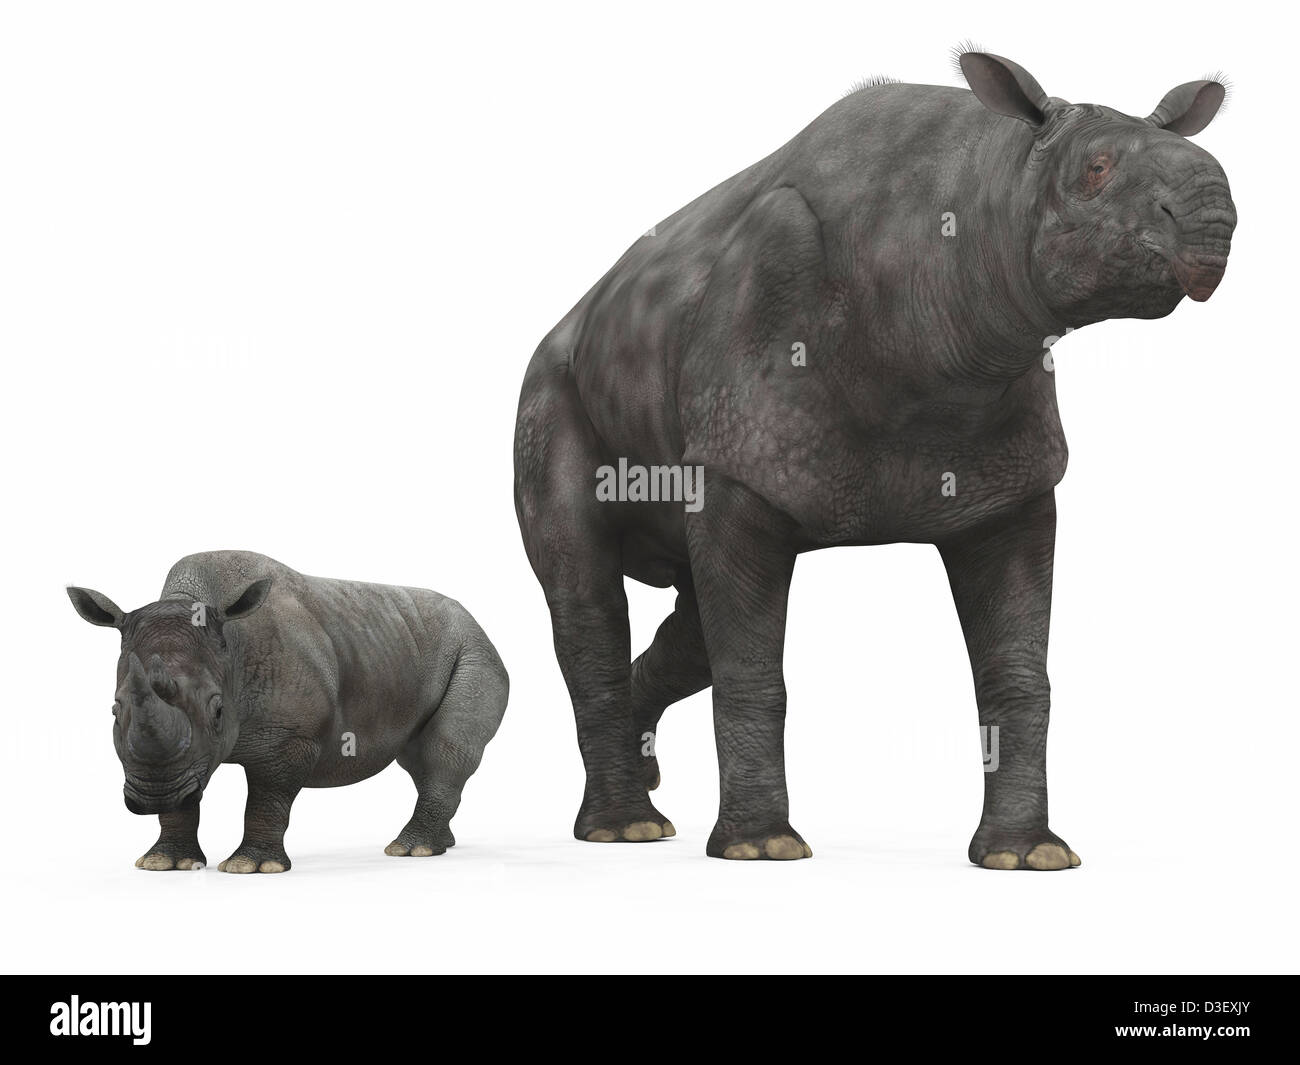 An adult Paraceratherium compared to a modern adult White Rhinoceros. - Stock Image